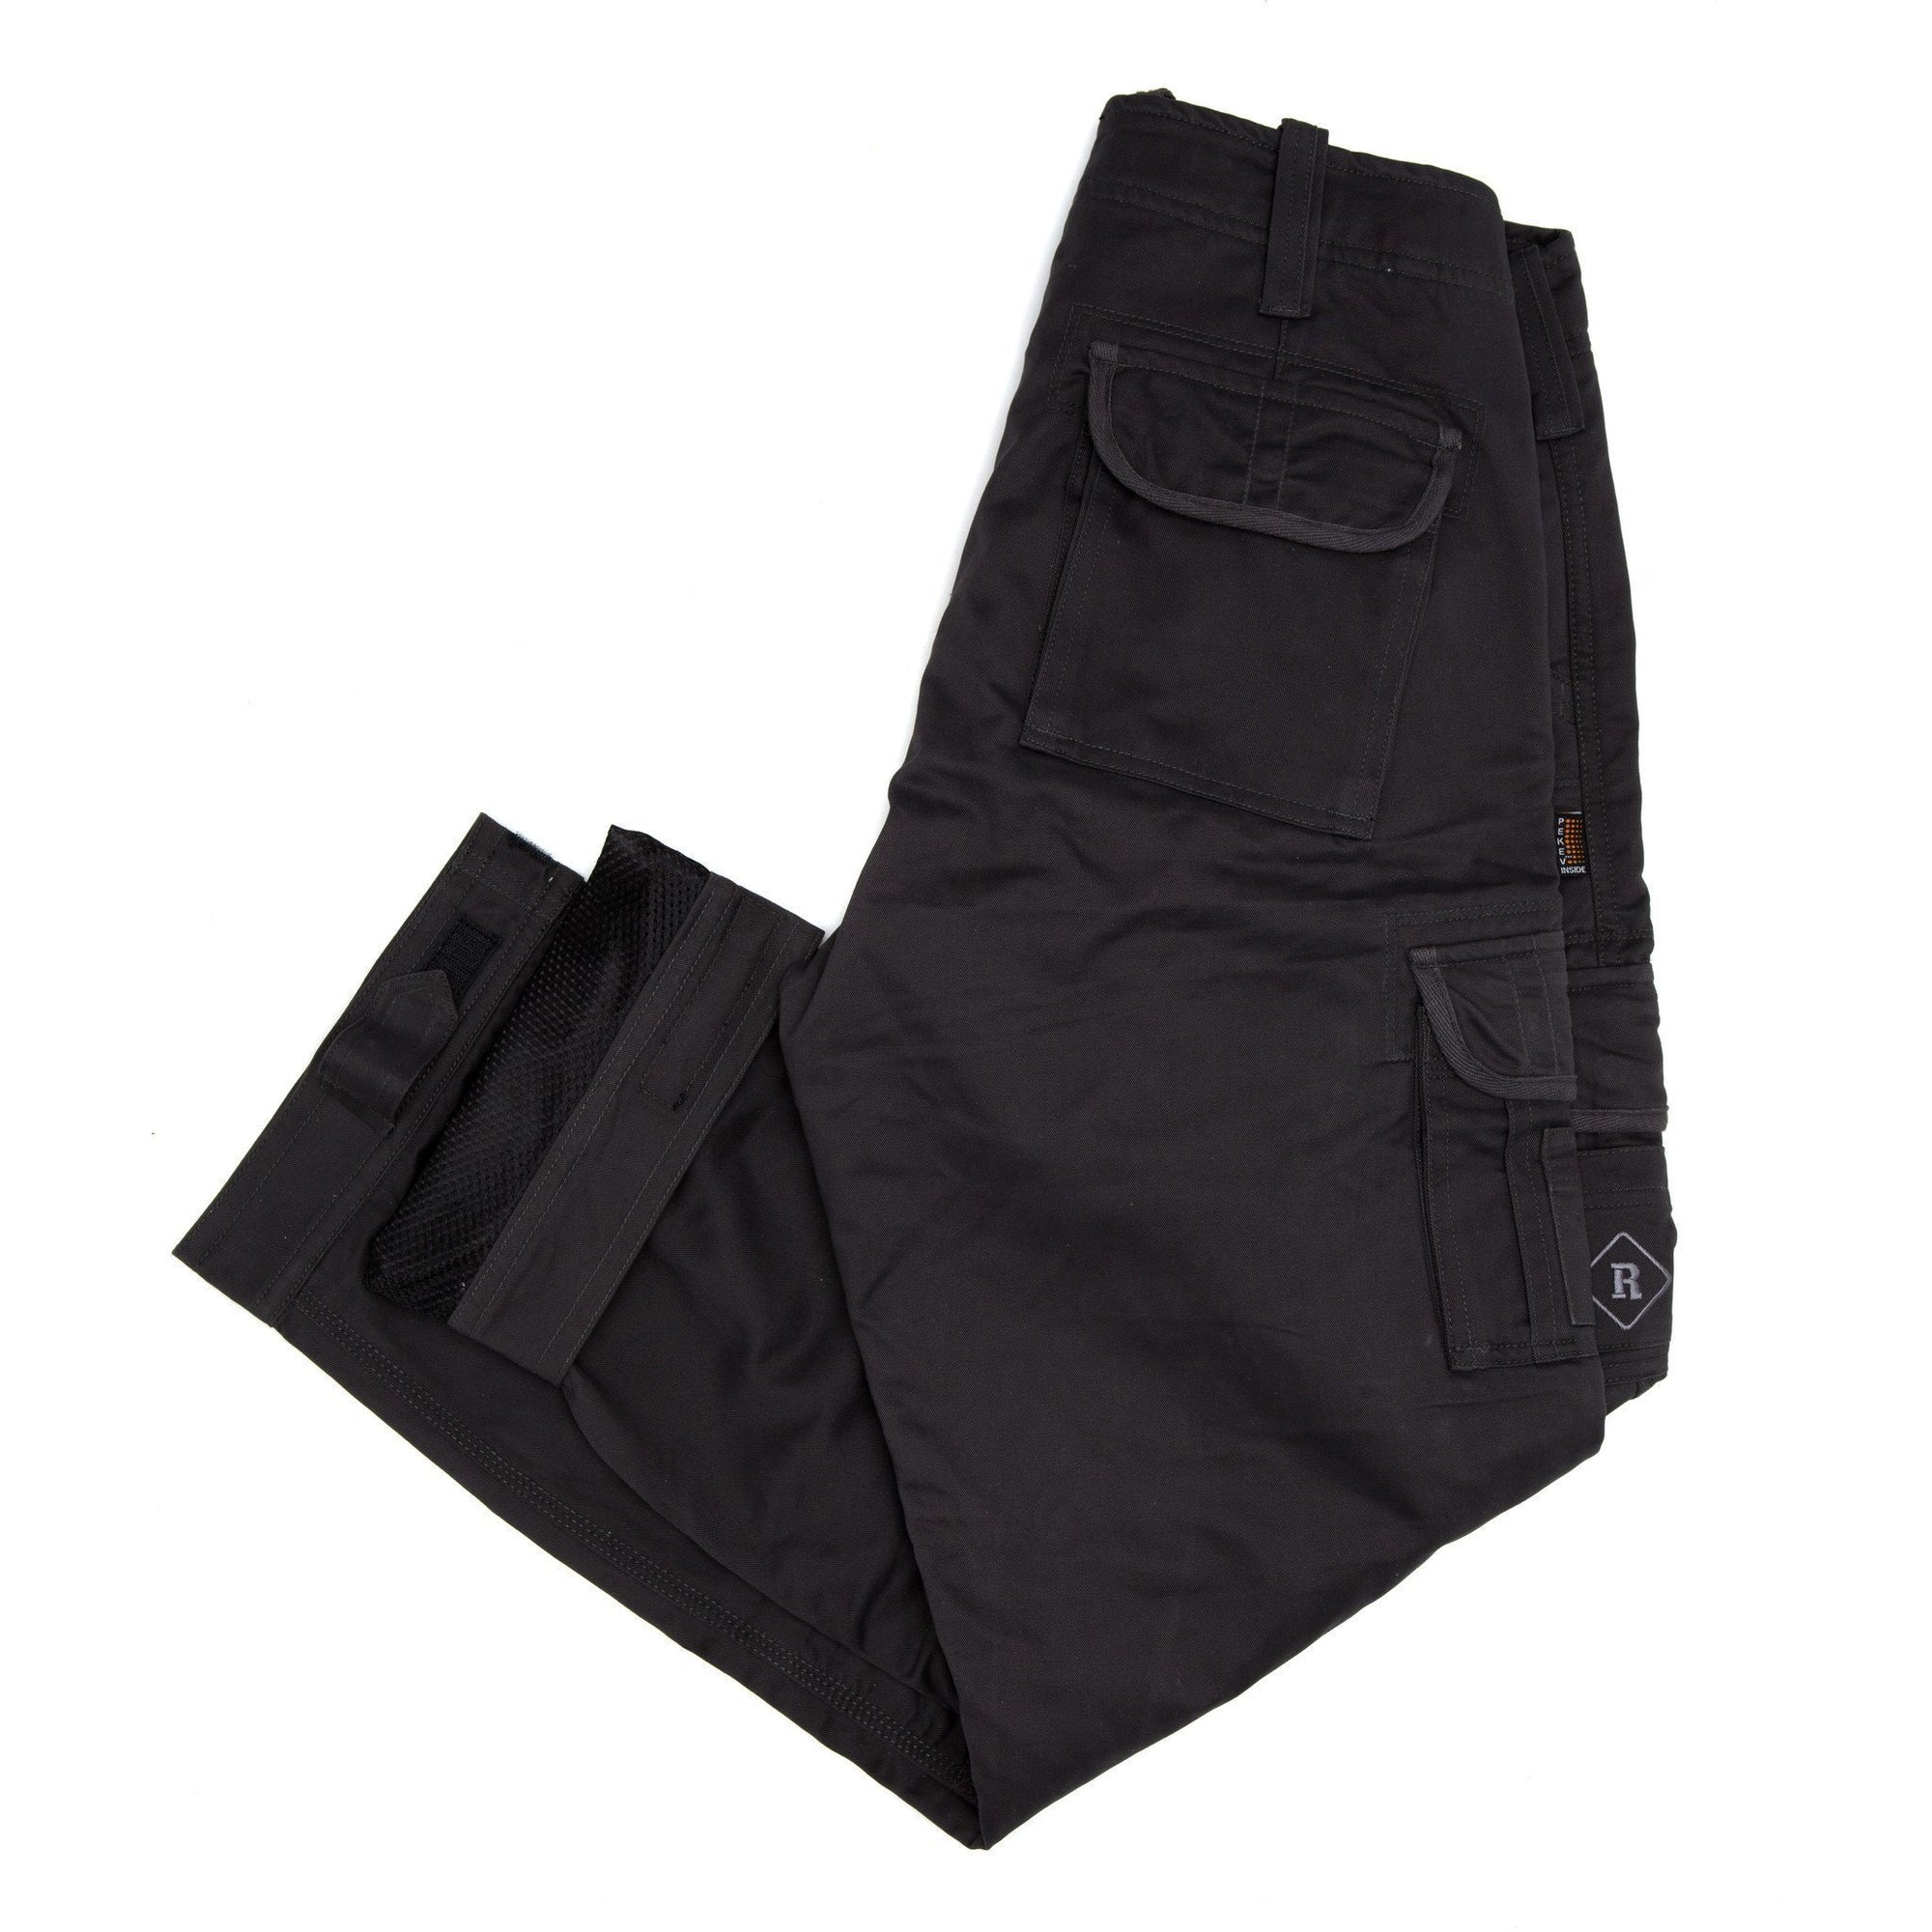 Resurgence Gear Inc. - Resurgence Gear® Cruiser PEKEV® Charcoal Men's Cargo Trousers - Men's Trousers - Salt Flats Clothing